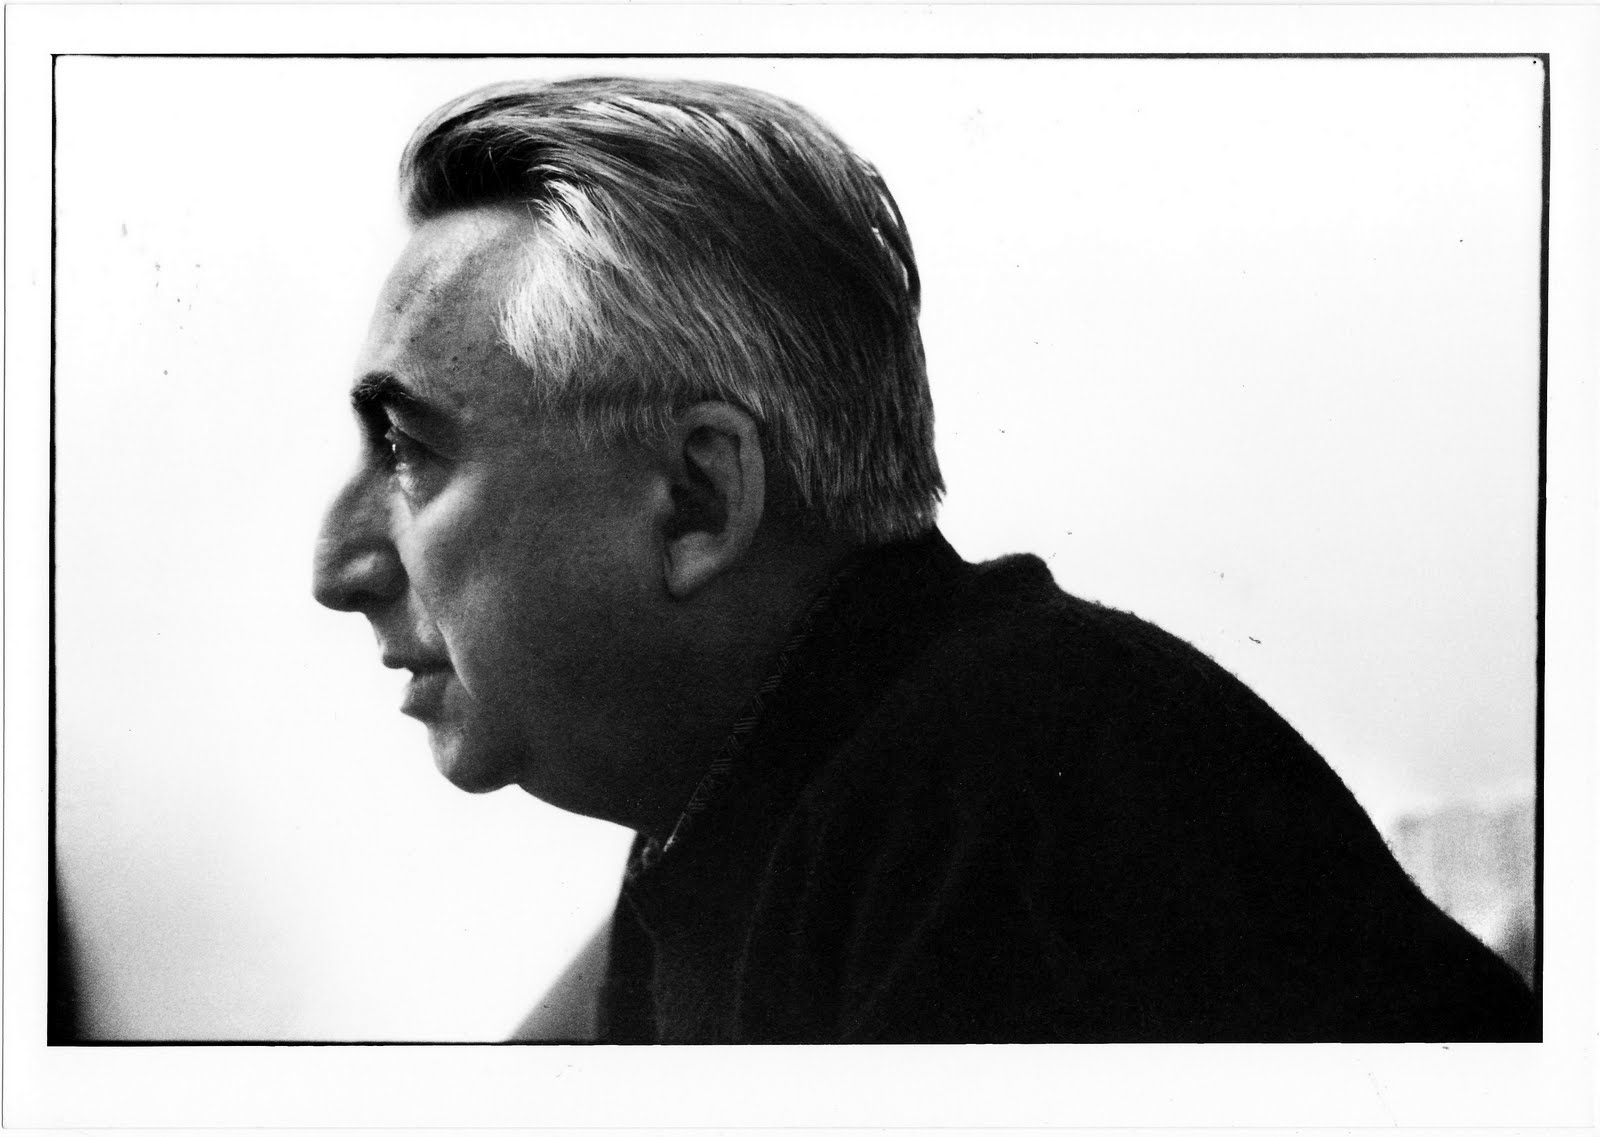 2015-04-08-1428507526-5999783-barthes.jpg